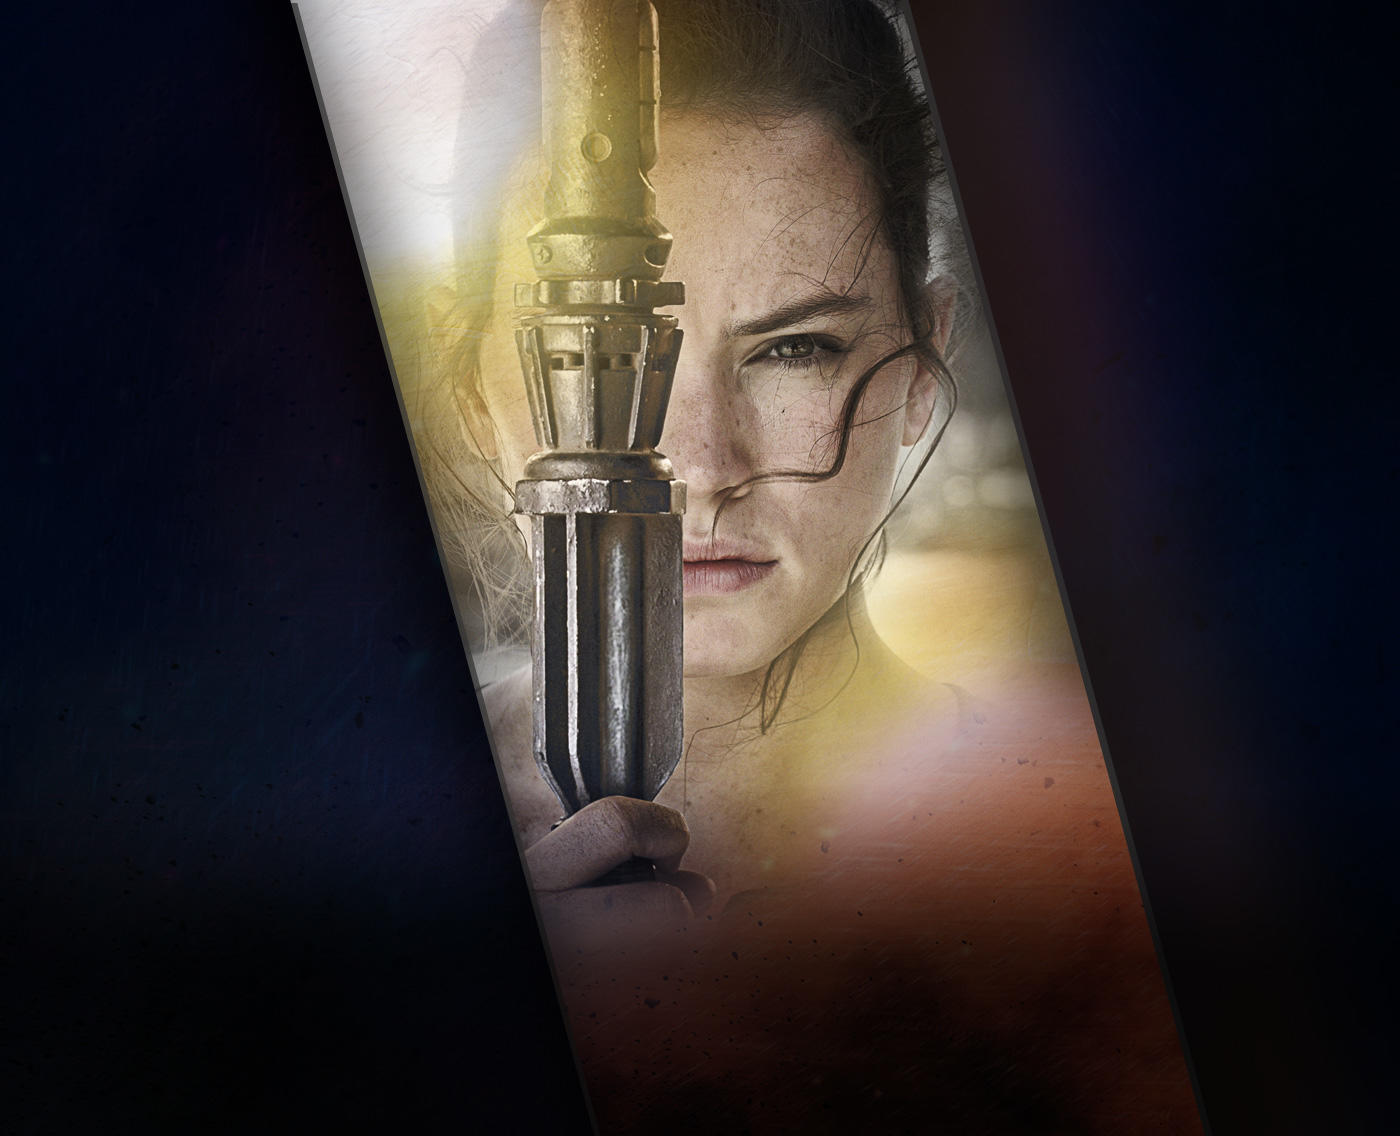 Check out the movie photos of 'Star Wars: Episode VII - The Force Awakens'